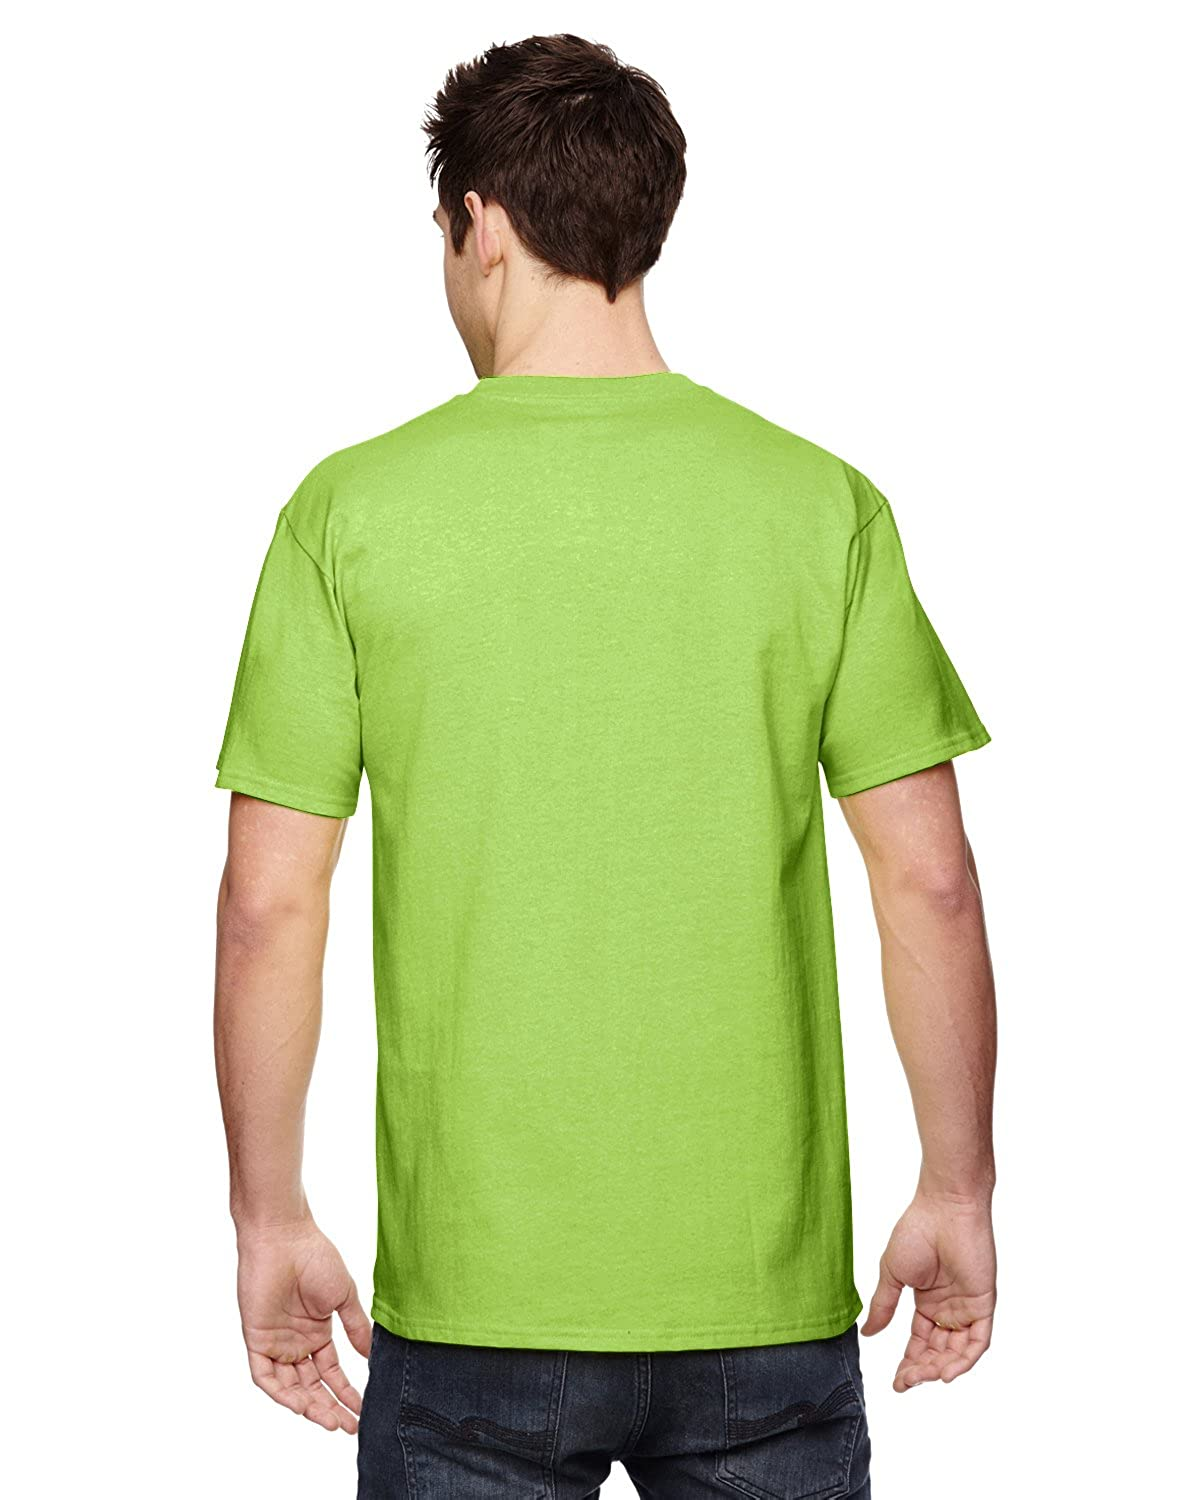 Fruit of the Loom 3930 100/% Heavy Cotton Tee Neon Green 3 Pack